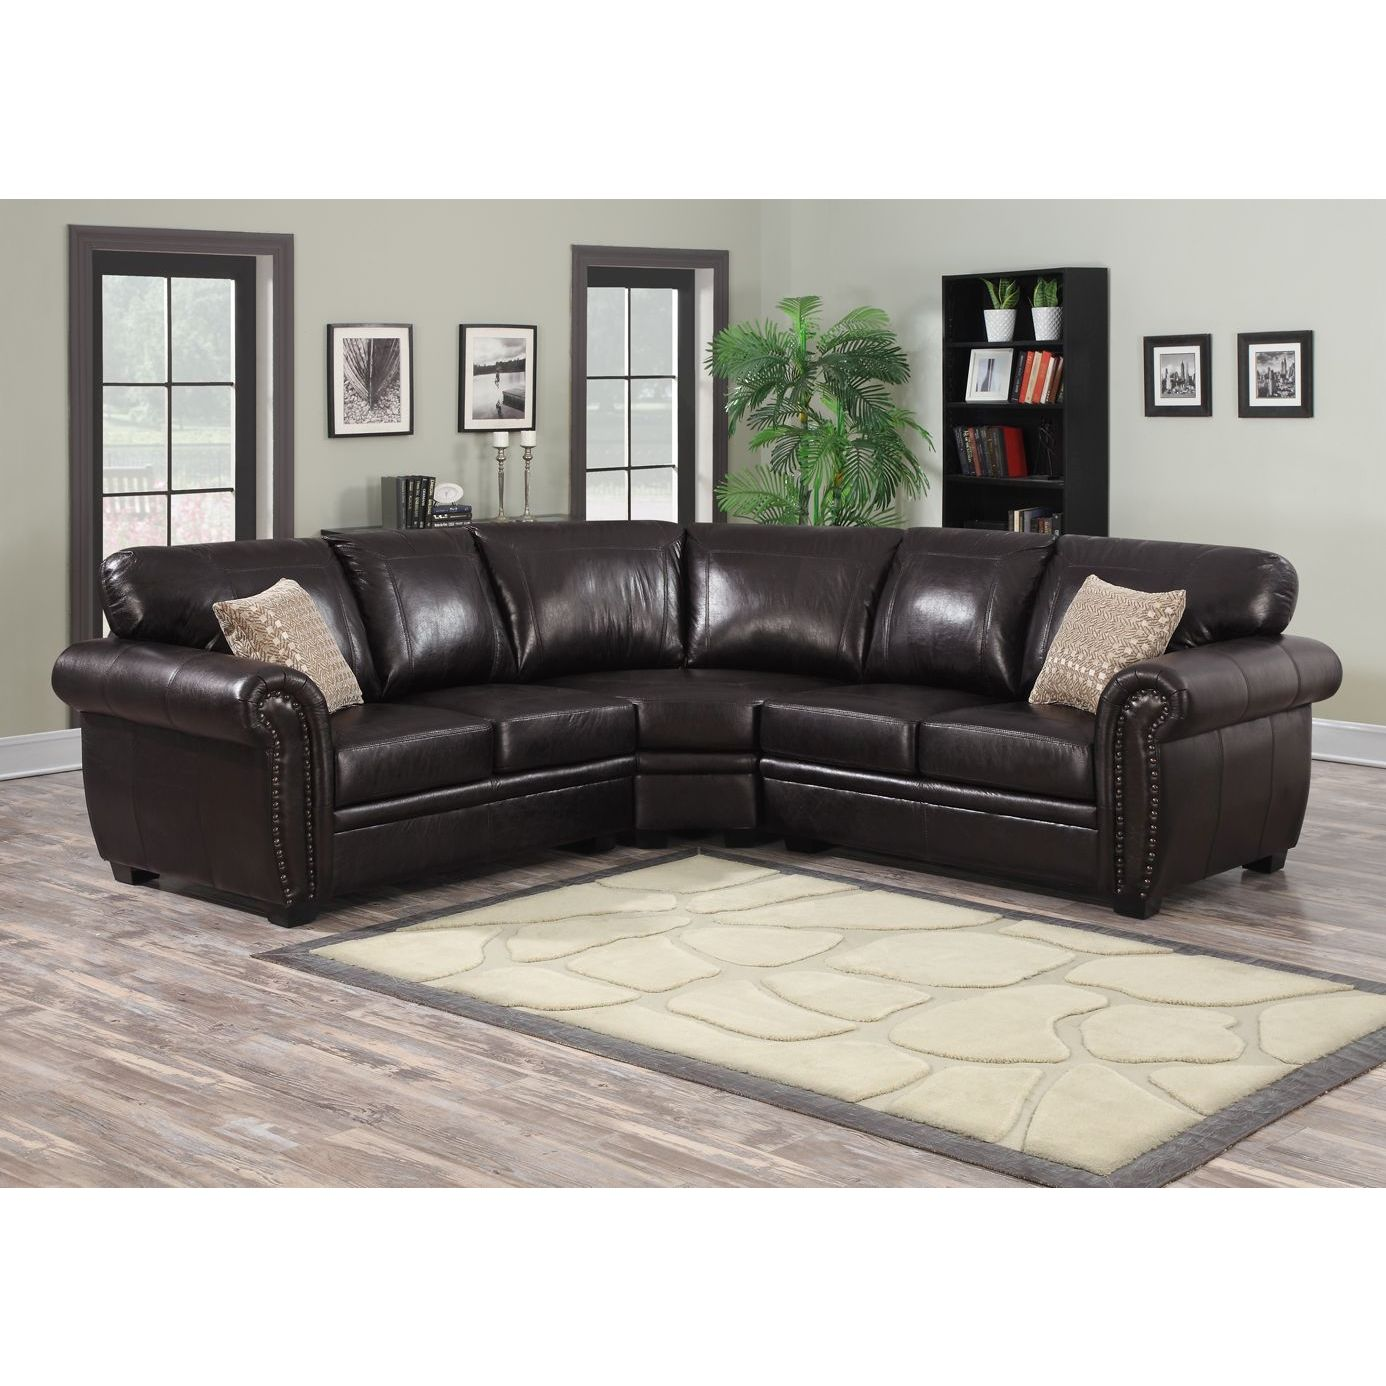 Admirable Connie 3 Piece Dark Brown Sectional Sofa Cjindustries Chair Design For Home Cjindustriesco